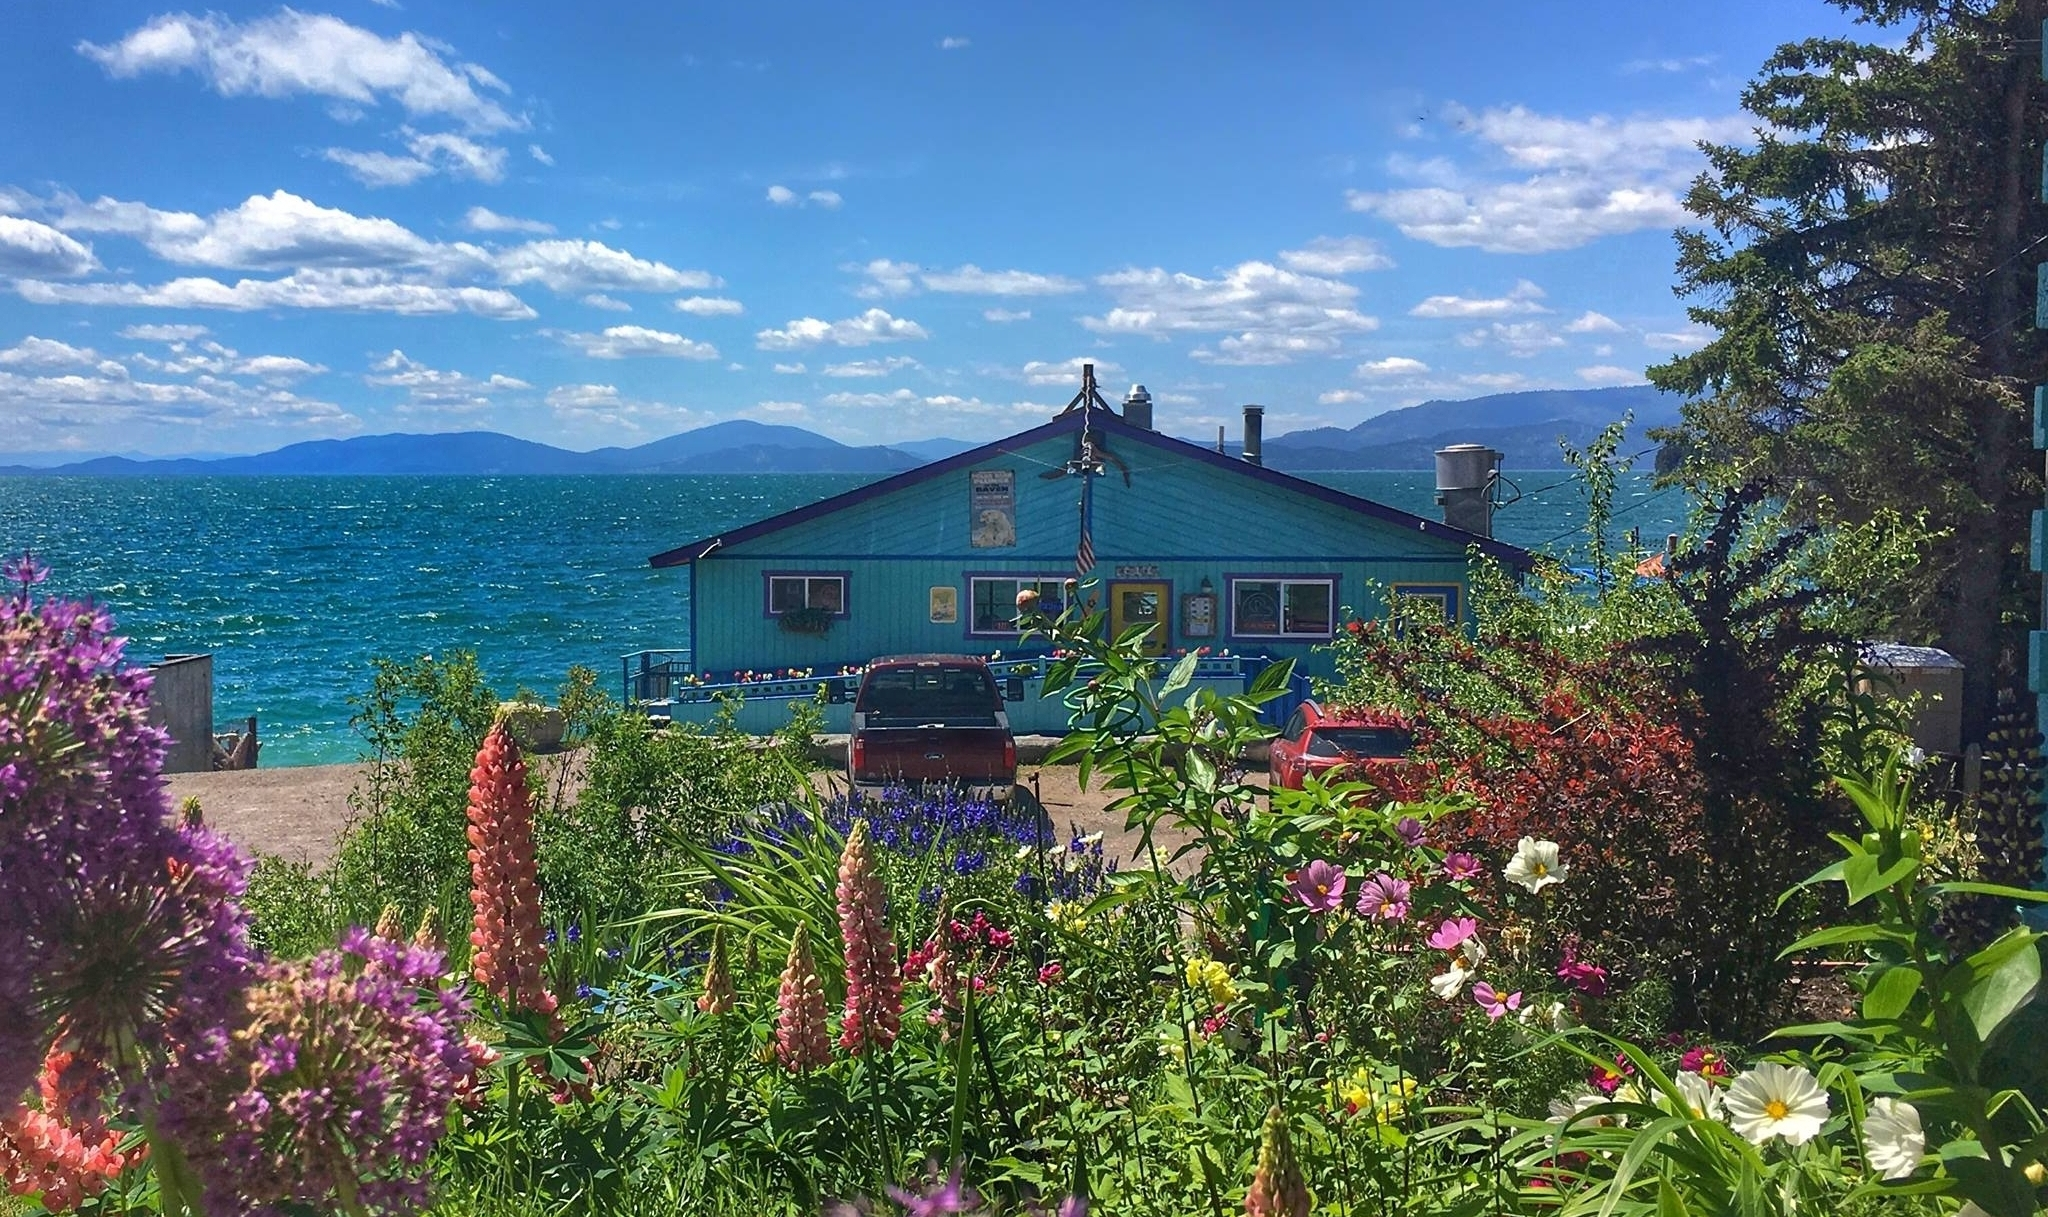 tHE VIEW AT cHECK-IN - fLATHEAD LAKE, wOODS bAY mONTANA